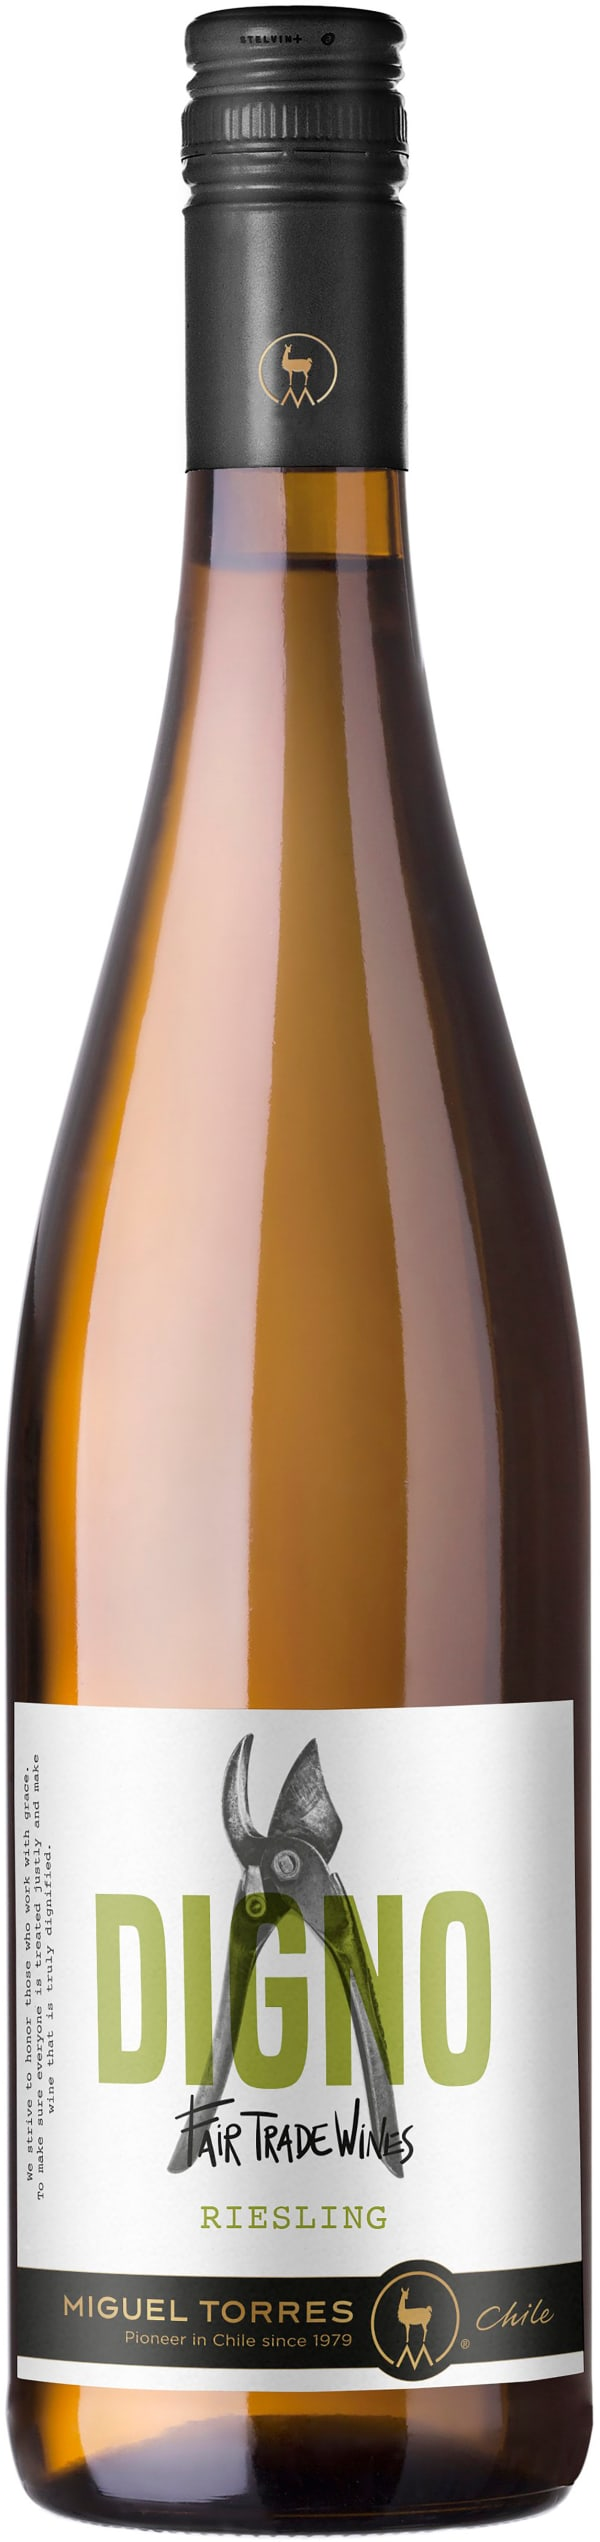 Torres Digno Riesling 2018